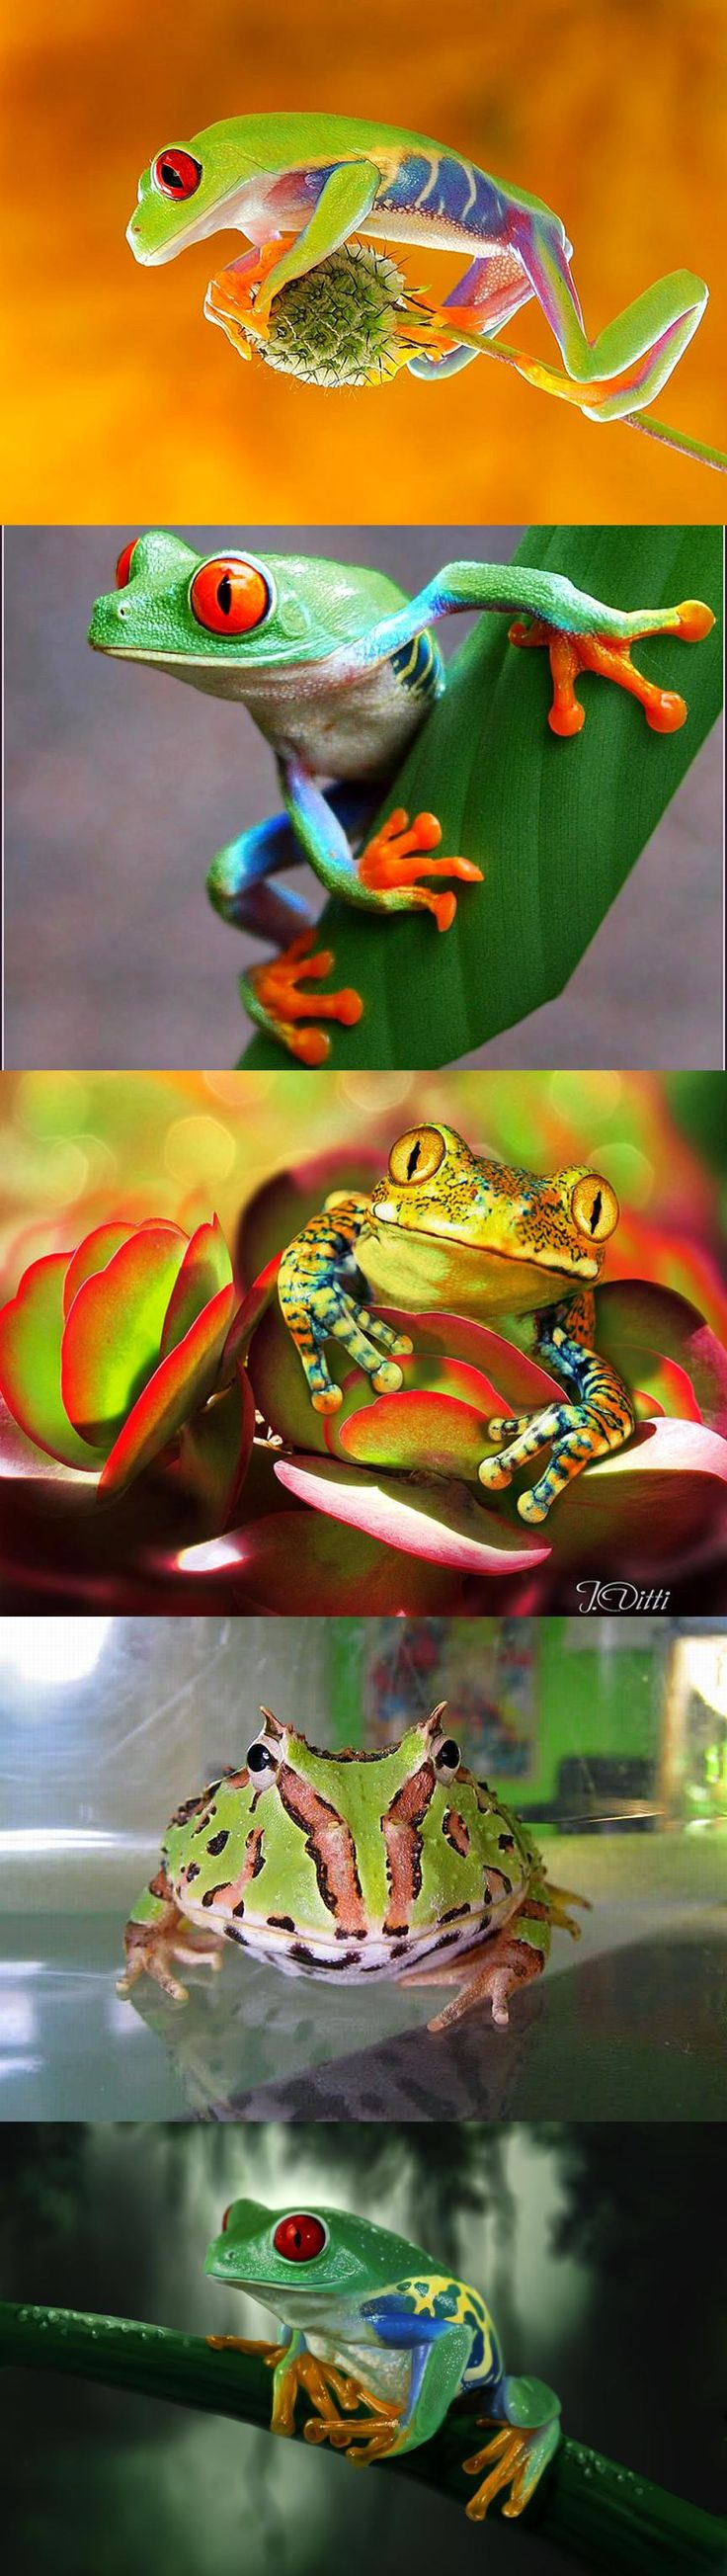 Colorful Frogs / these little frogs are so adorable - we will not discuss the rather large gentleman...